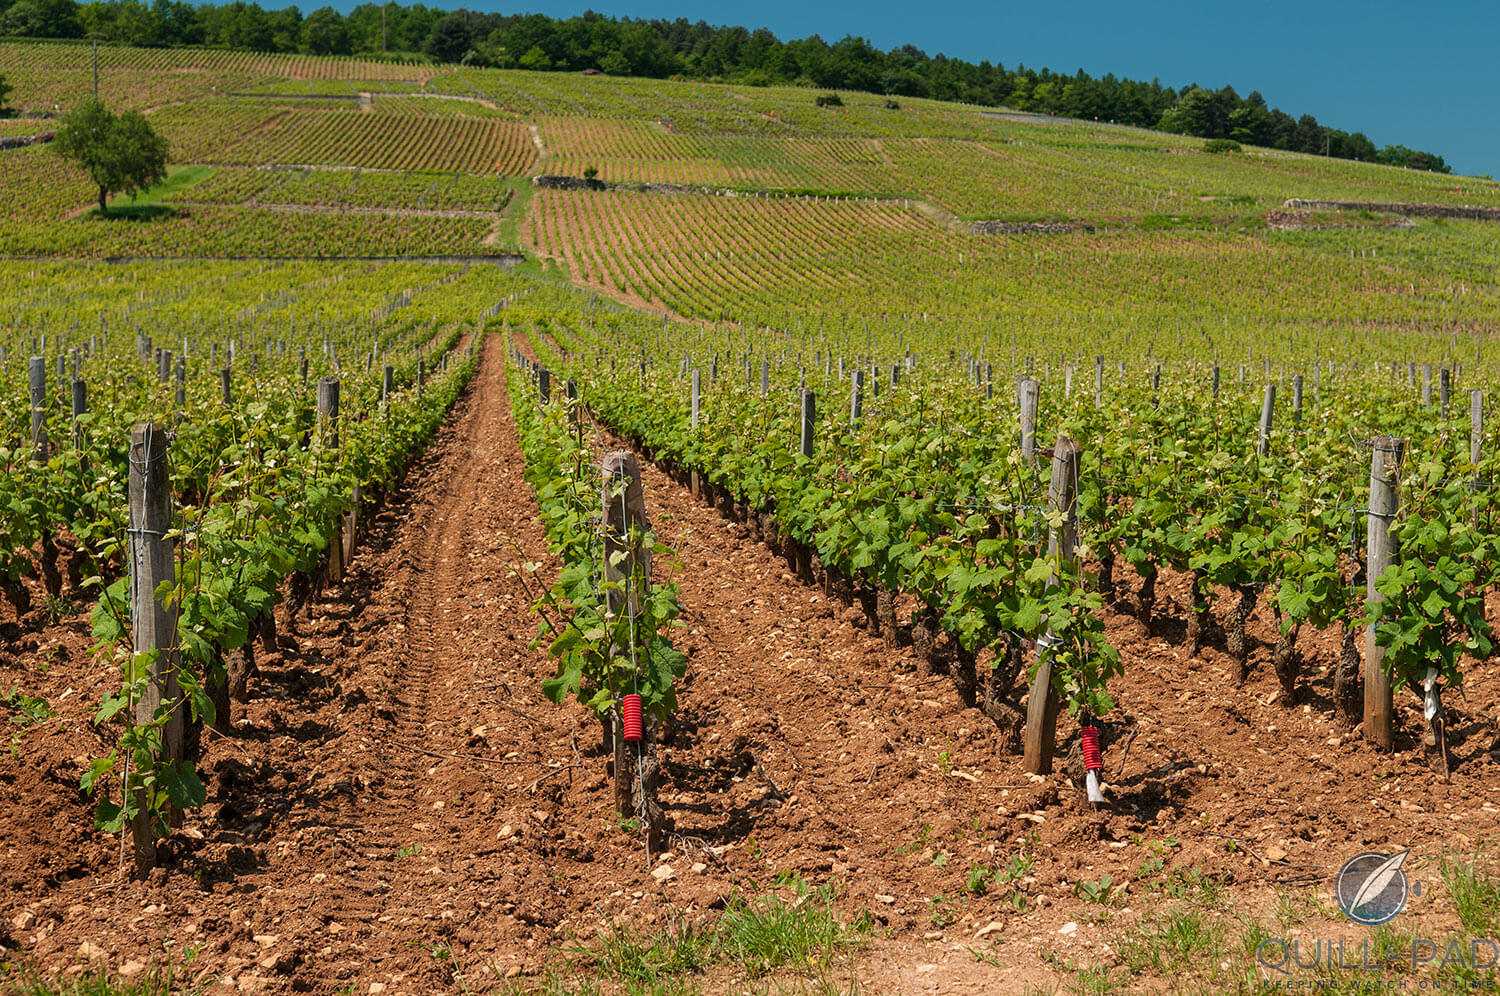 Vineyards of the Domaine de la Romanée-Conti in Burgundy